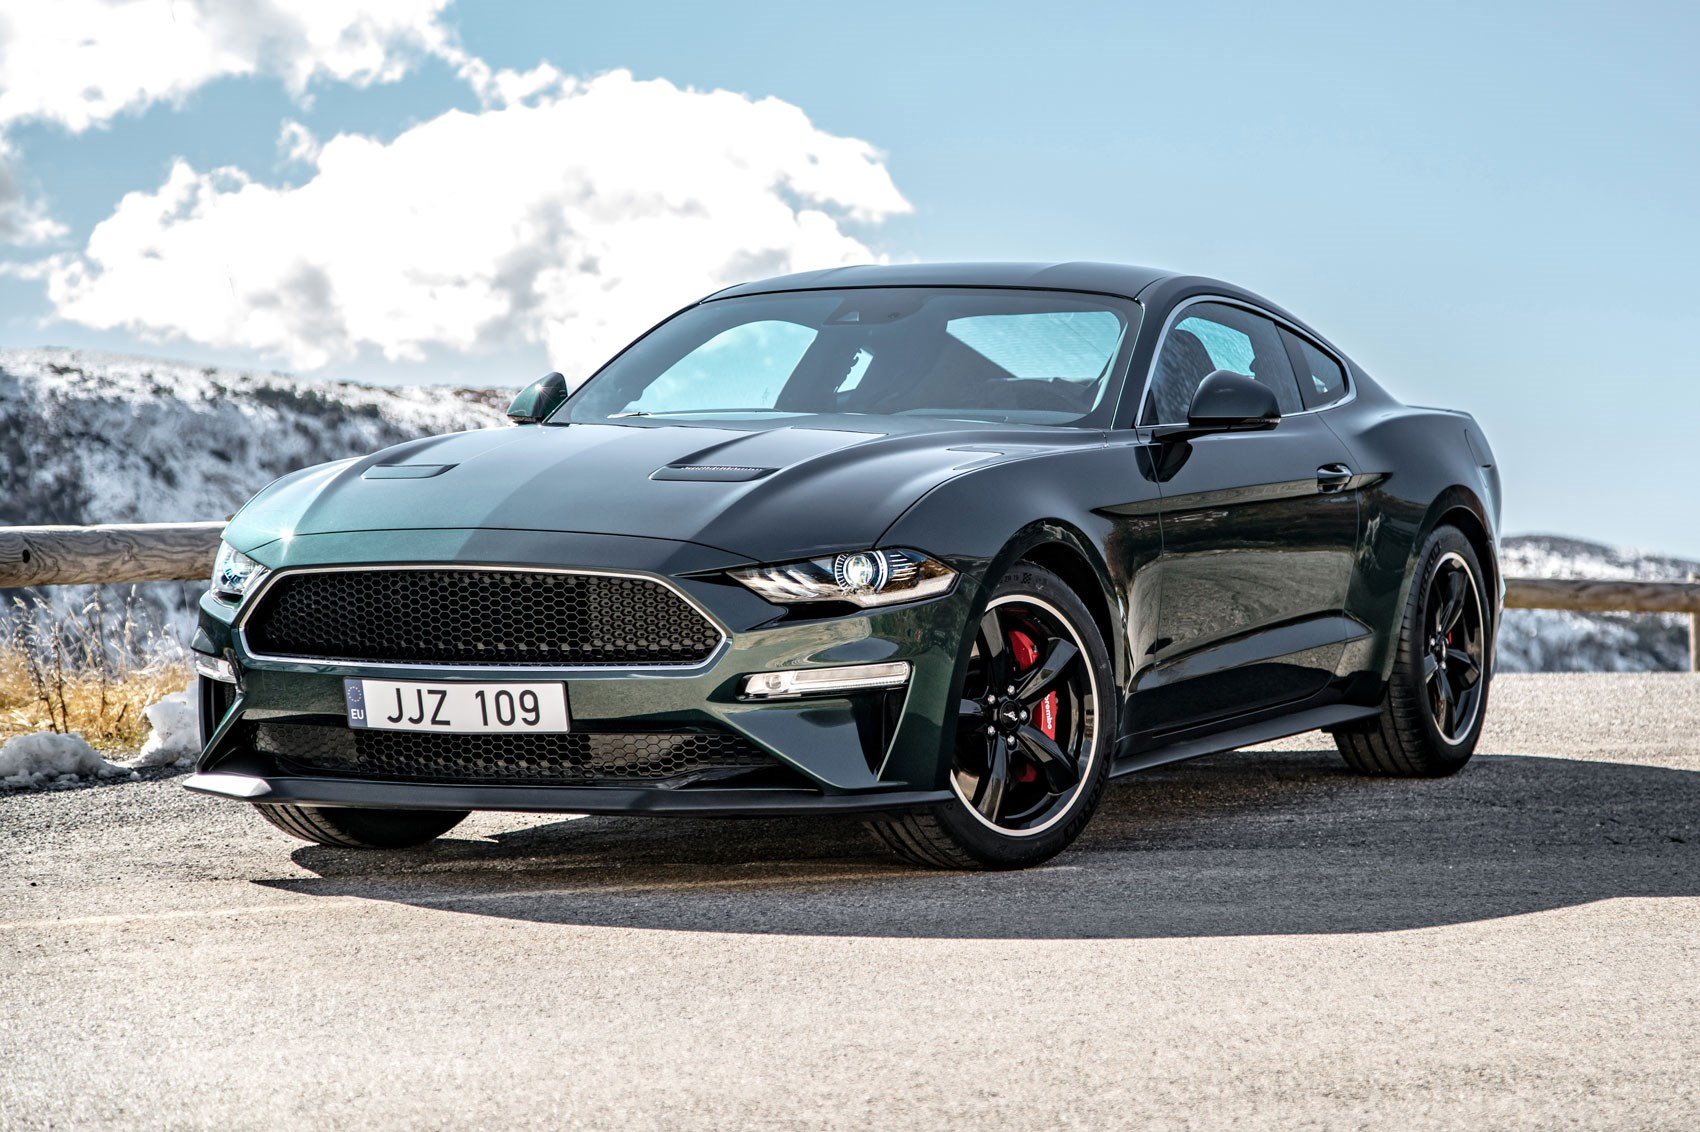 New 2019 ford mustang ford mustang bullitt sold for 300000 at barrett jackson charity auction in january 2018